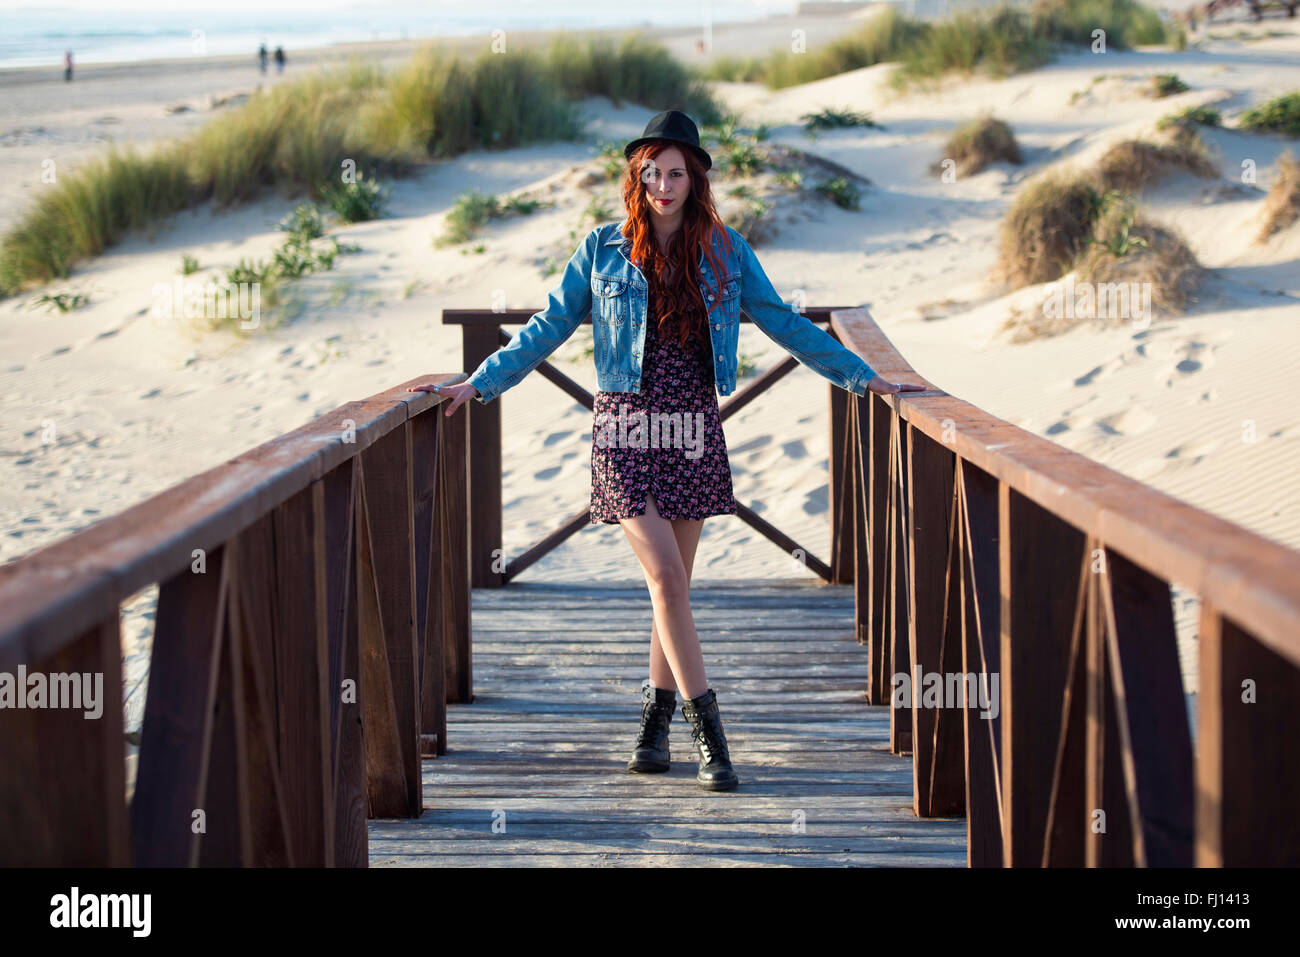 Spain, Cadiz, portrait of young redheaded woman standing on boardwalk at the beach - Stock Image